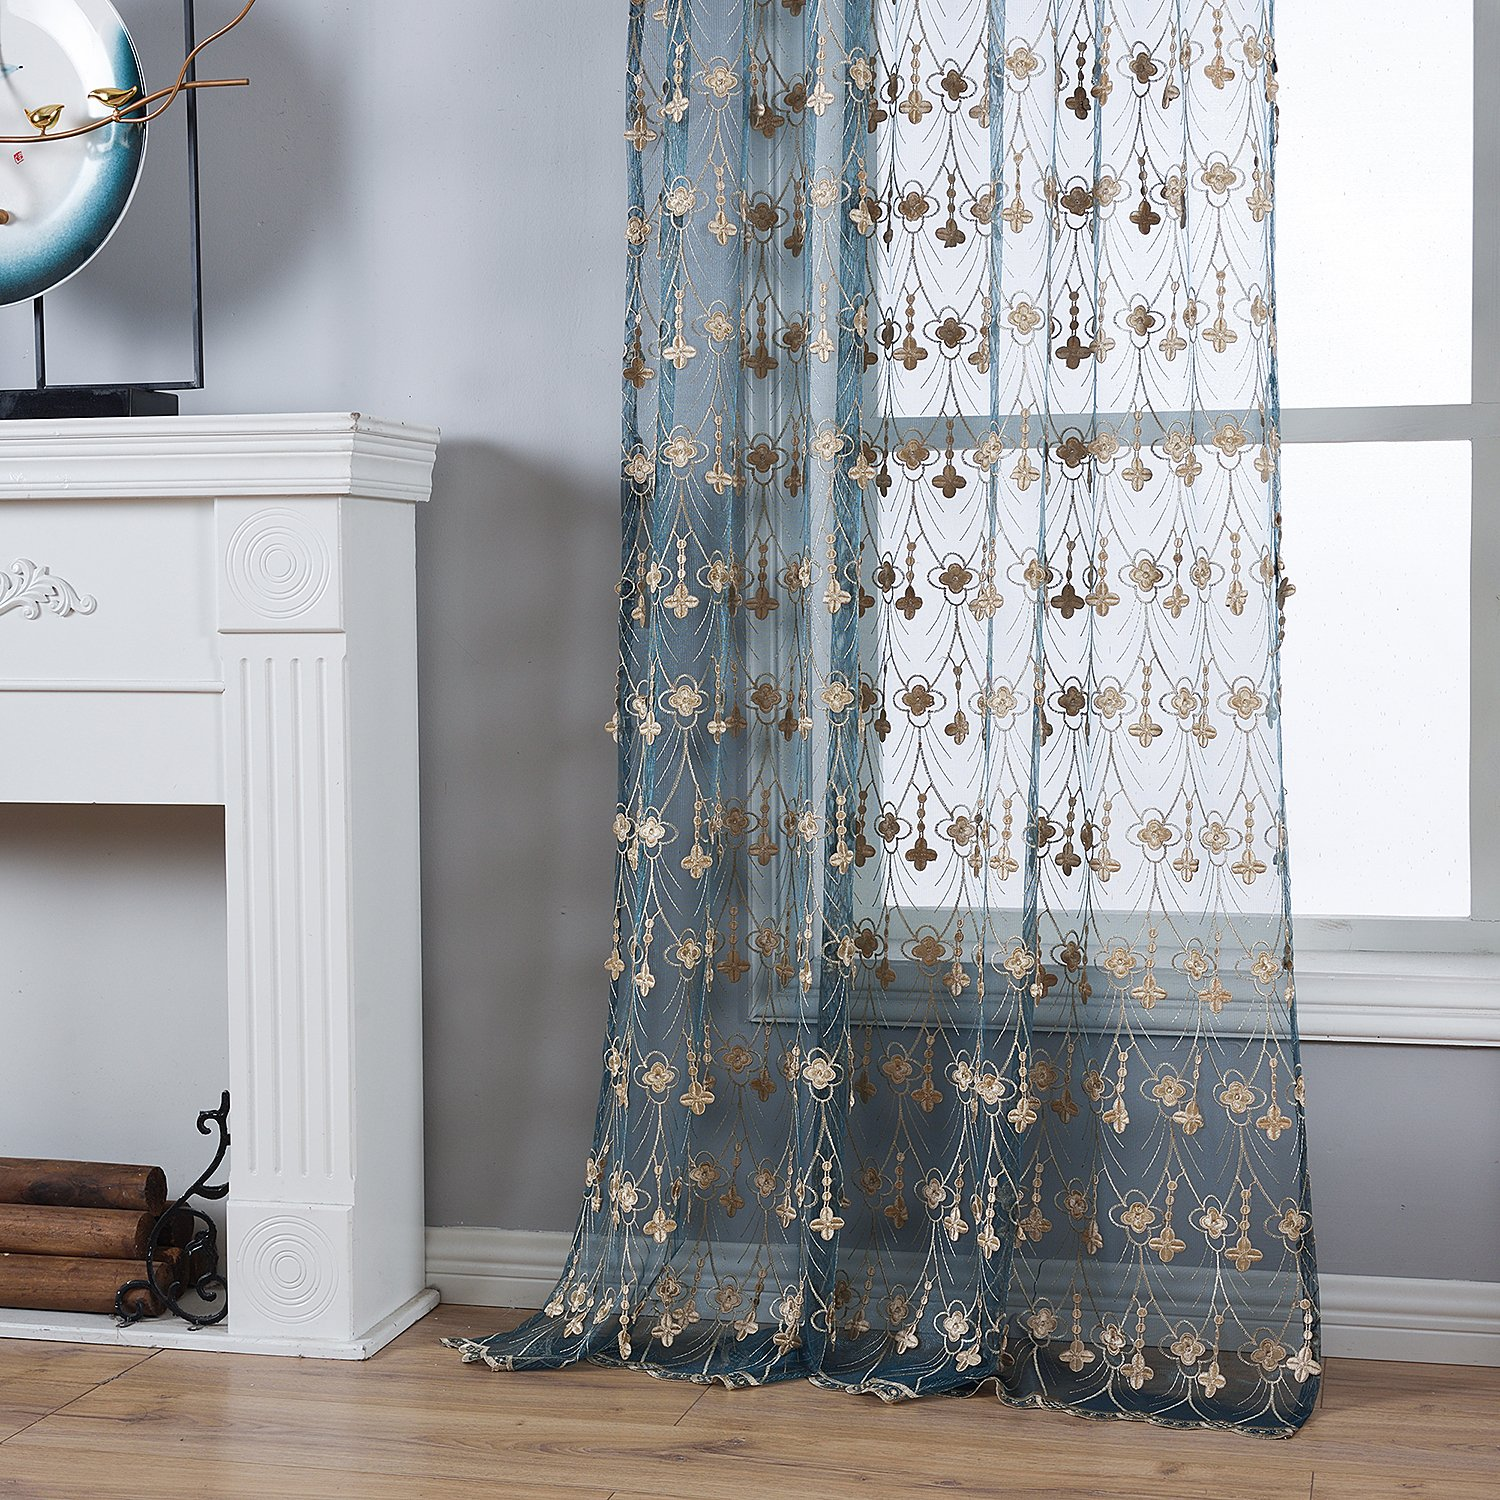 Elegant Cartoon Kids Room Dragonfly Pattern Embroidery Sheer Curtain Window Treatment Rod Pocket Panel Voile Draperies for Living Room Bedroom Dining Room 1 Panel, W 50 x L 63 inch, White